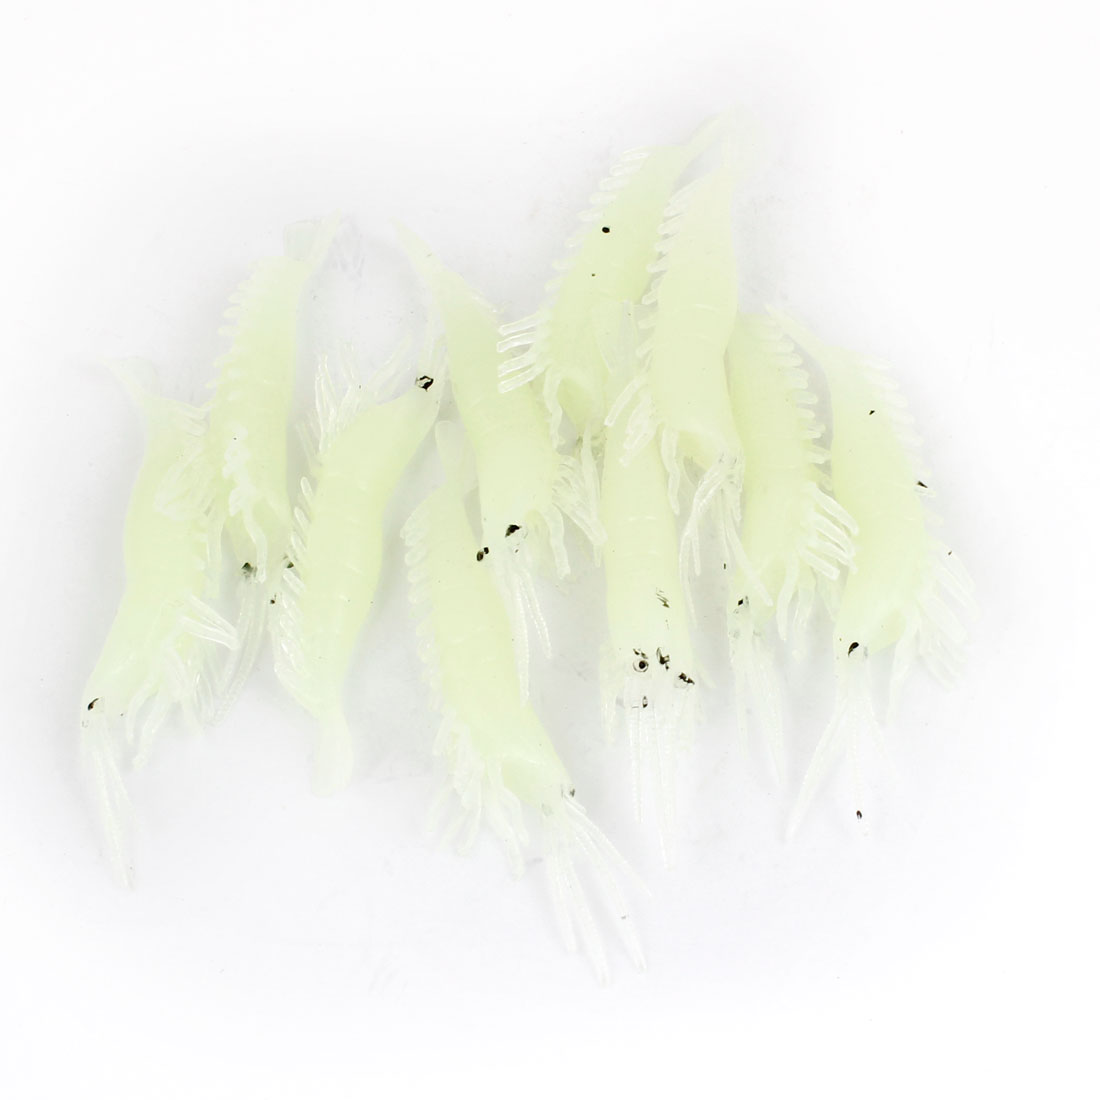 10 Pcs Artificial Soft Silicone Luminous Shrimp Fishing Baits Lure Pale Green